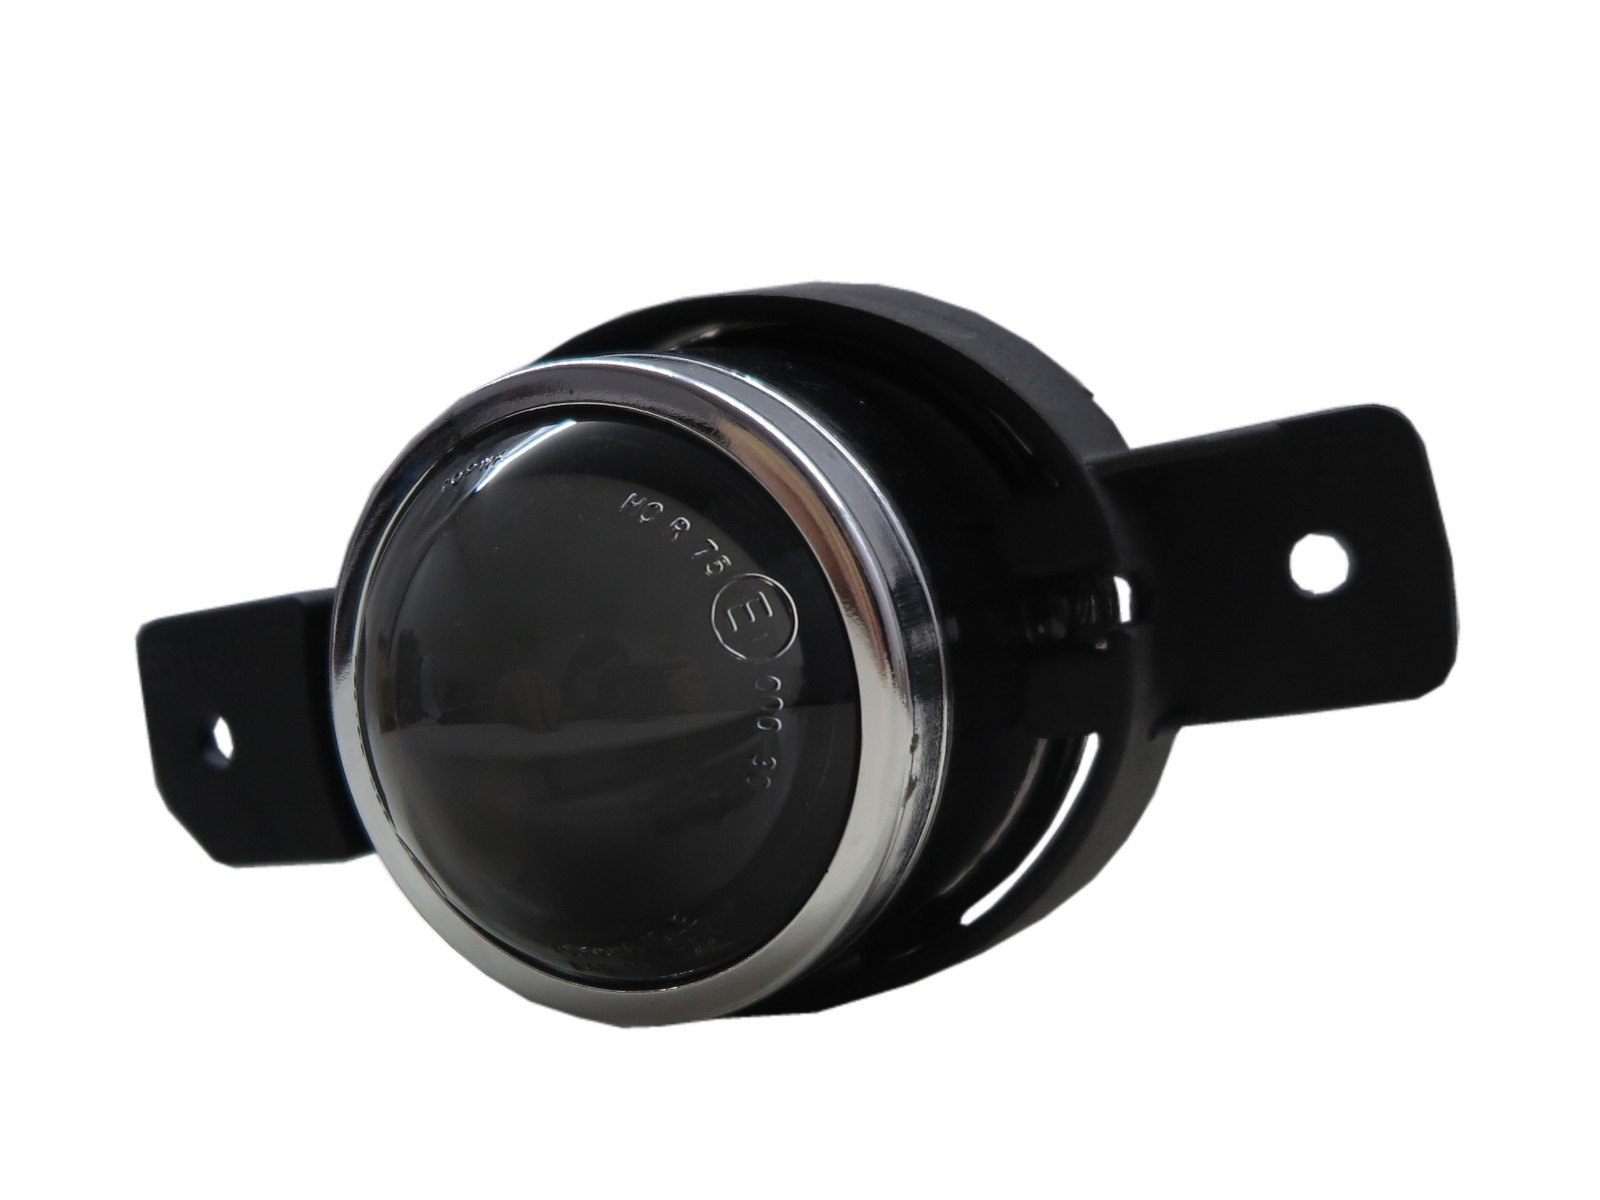 thumbnail 2 - Juke F15 MK1 2014-Present Facelift SUV 5D Projector Fog Light Black for NISSAN